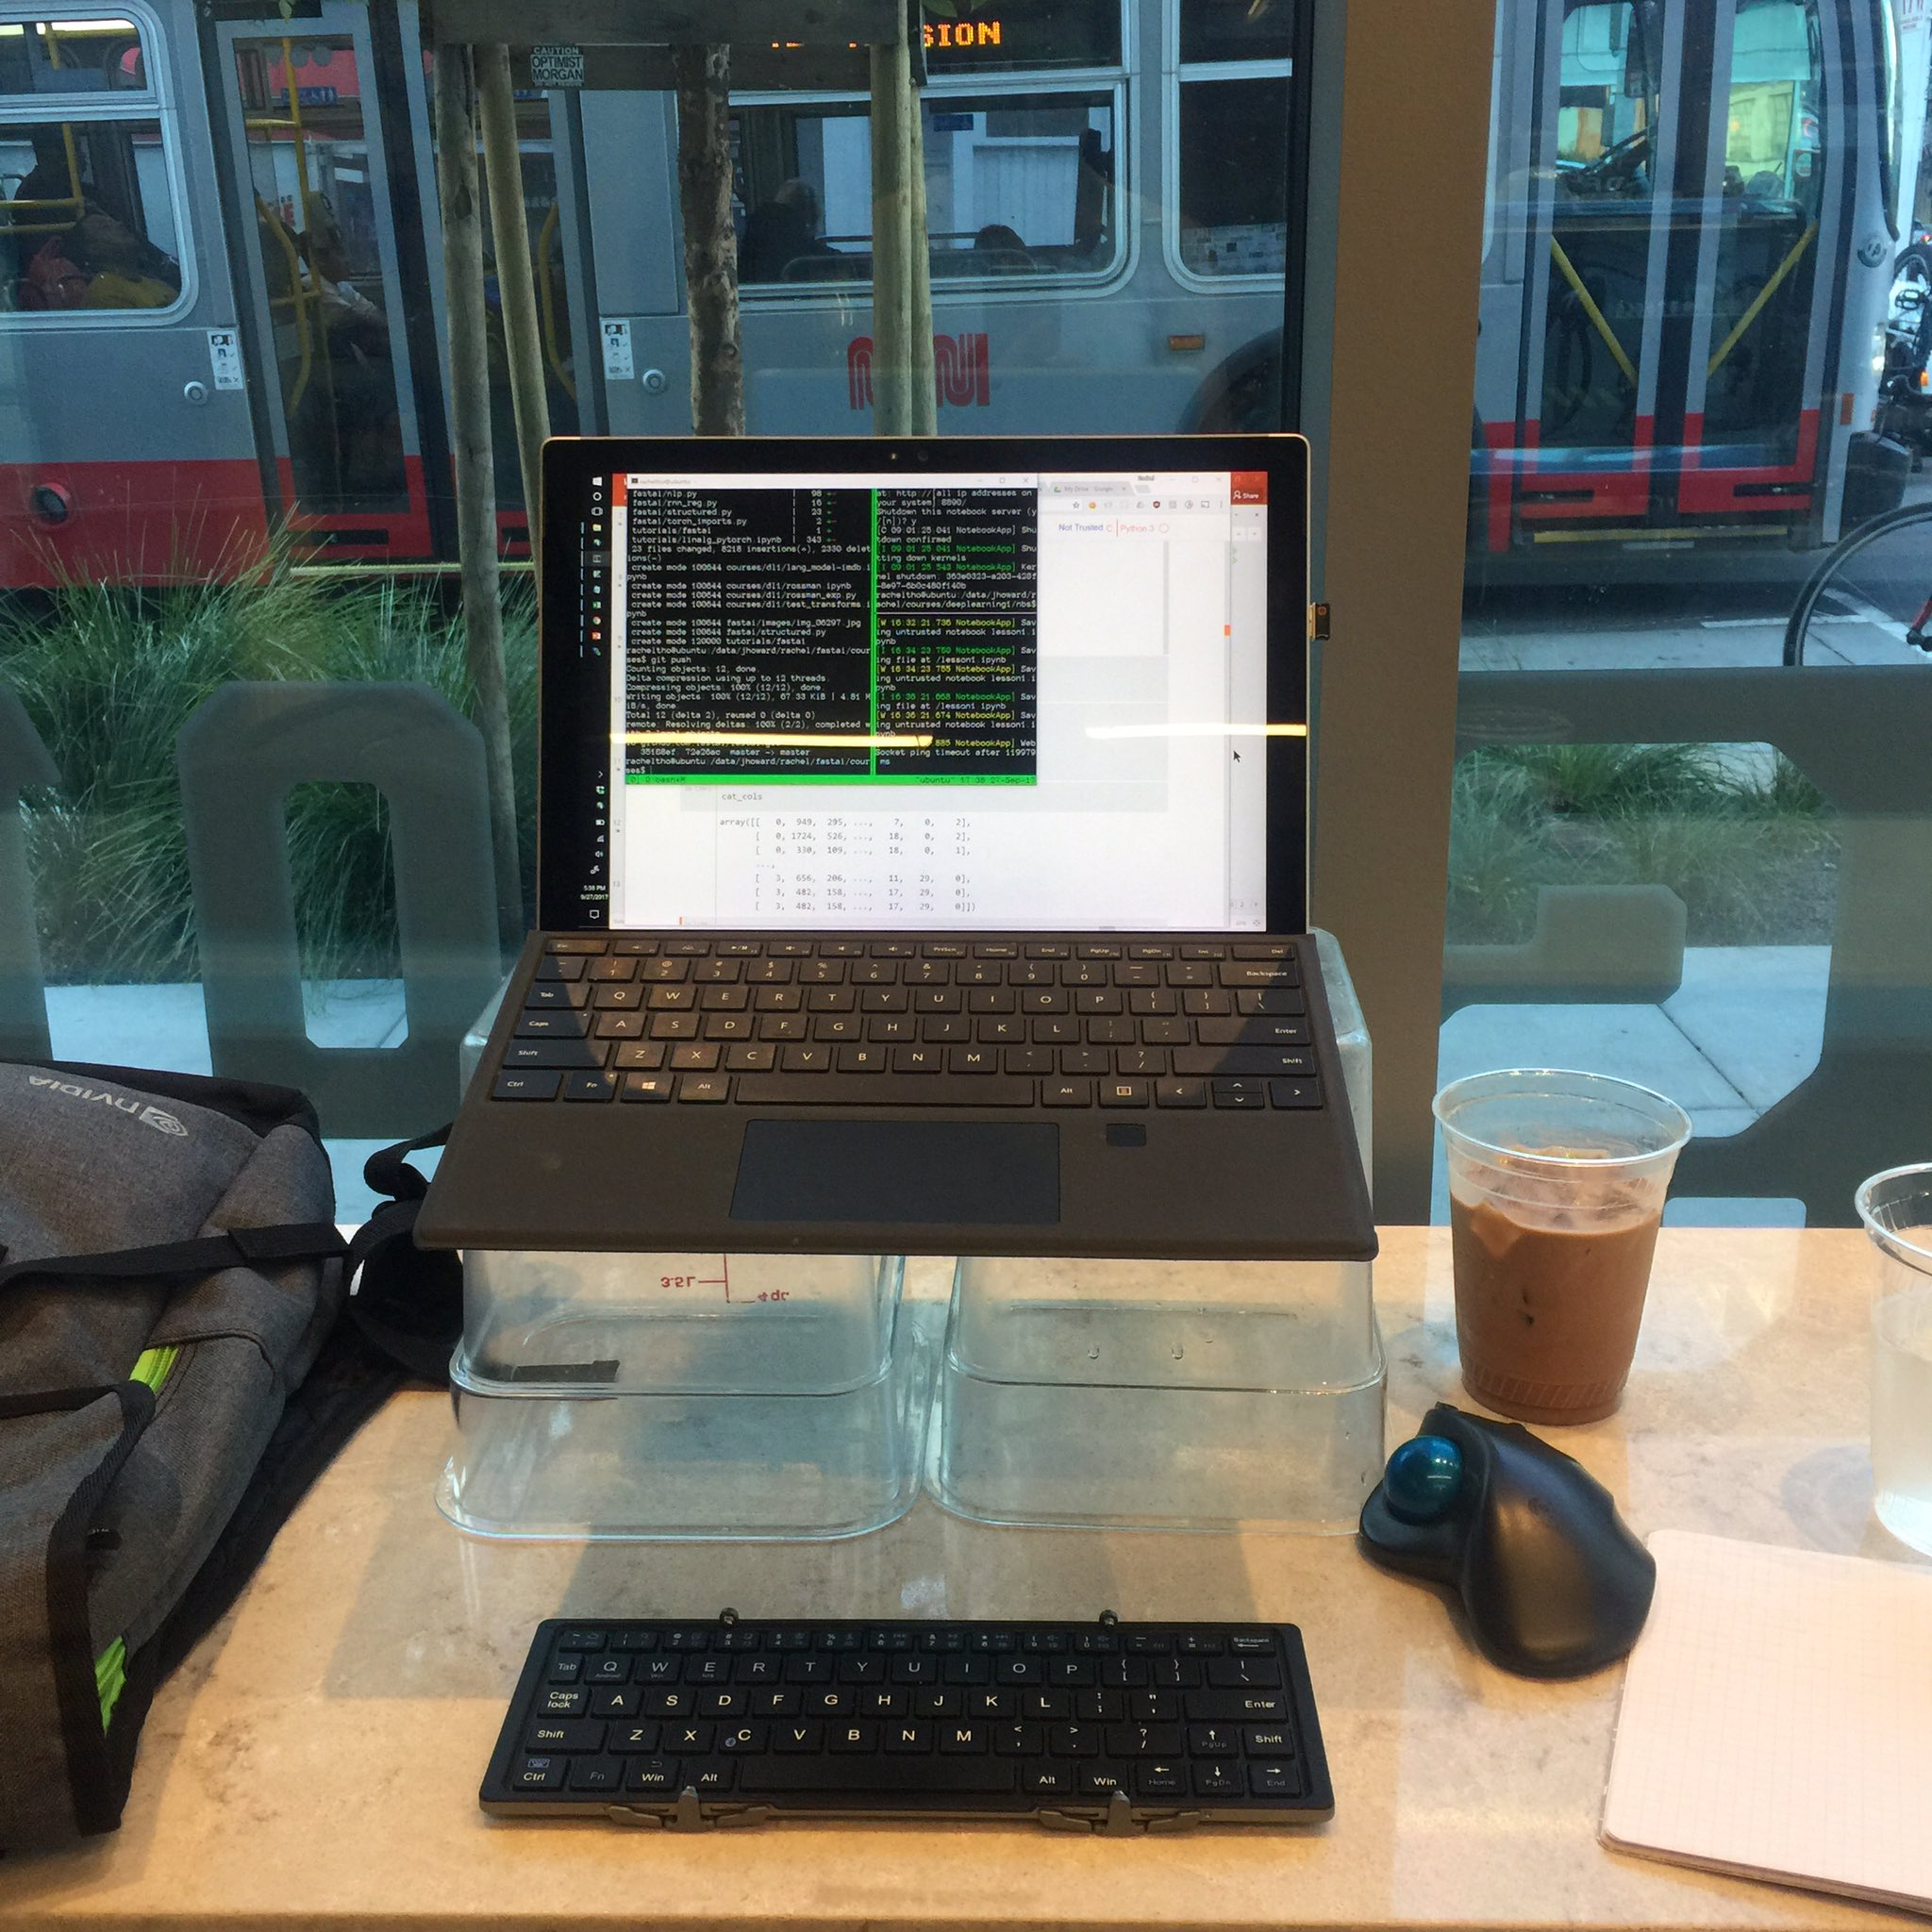 The barista at this coffee shop kindly let me use 2 plastic tubs to prop up my laptop.